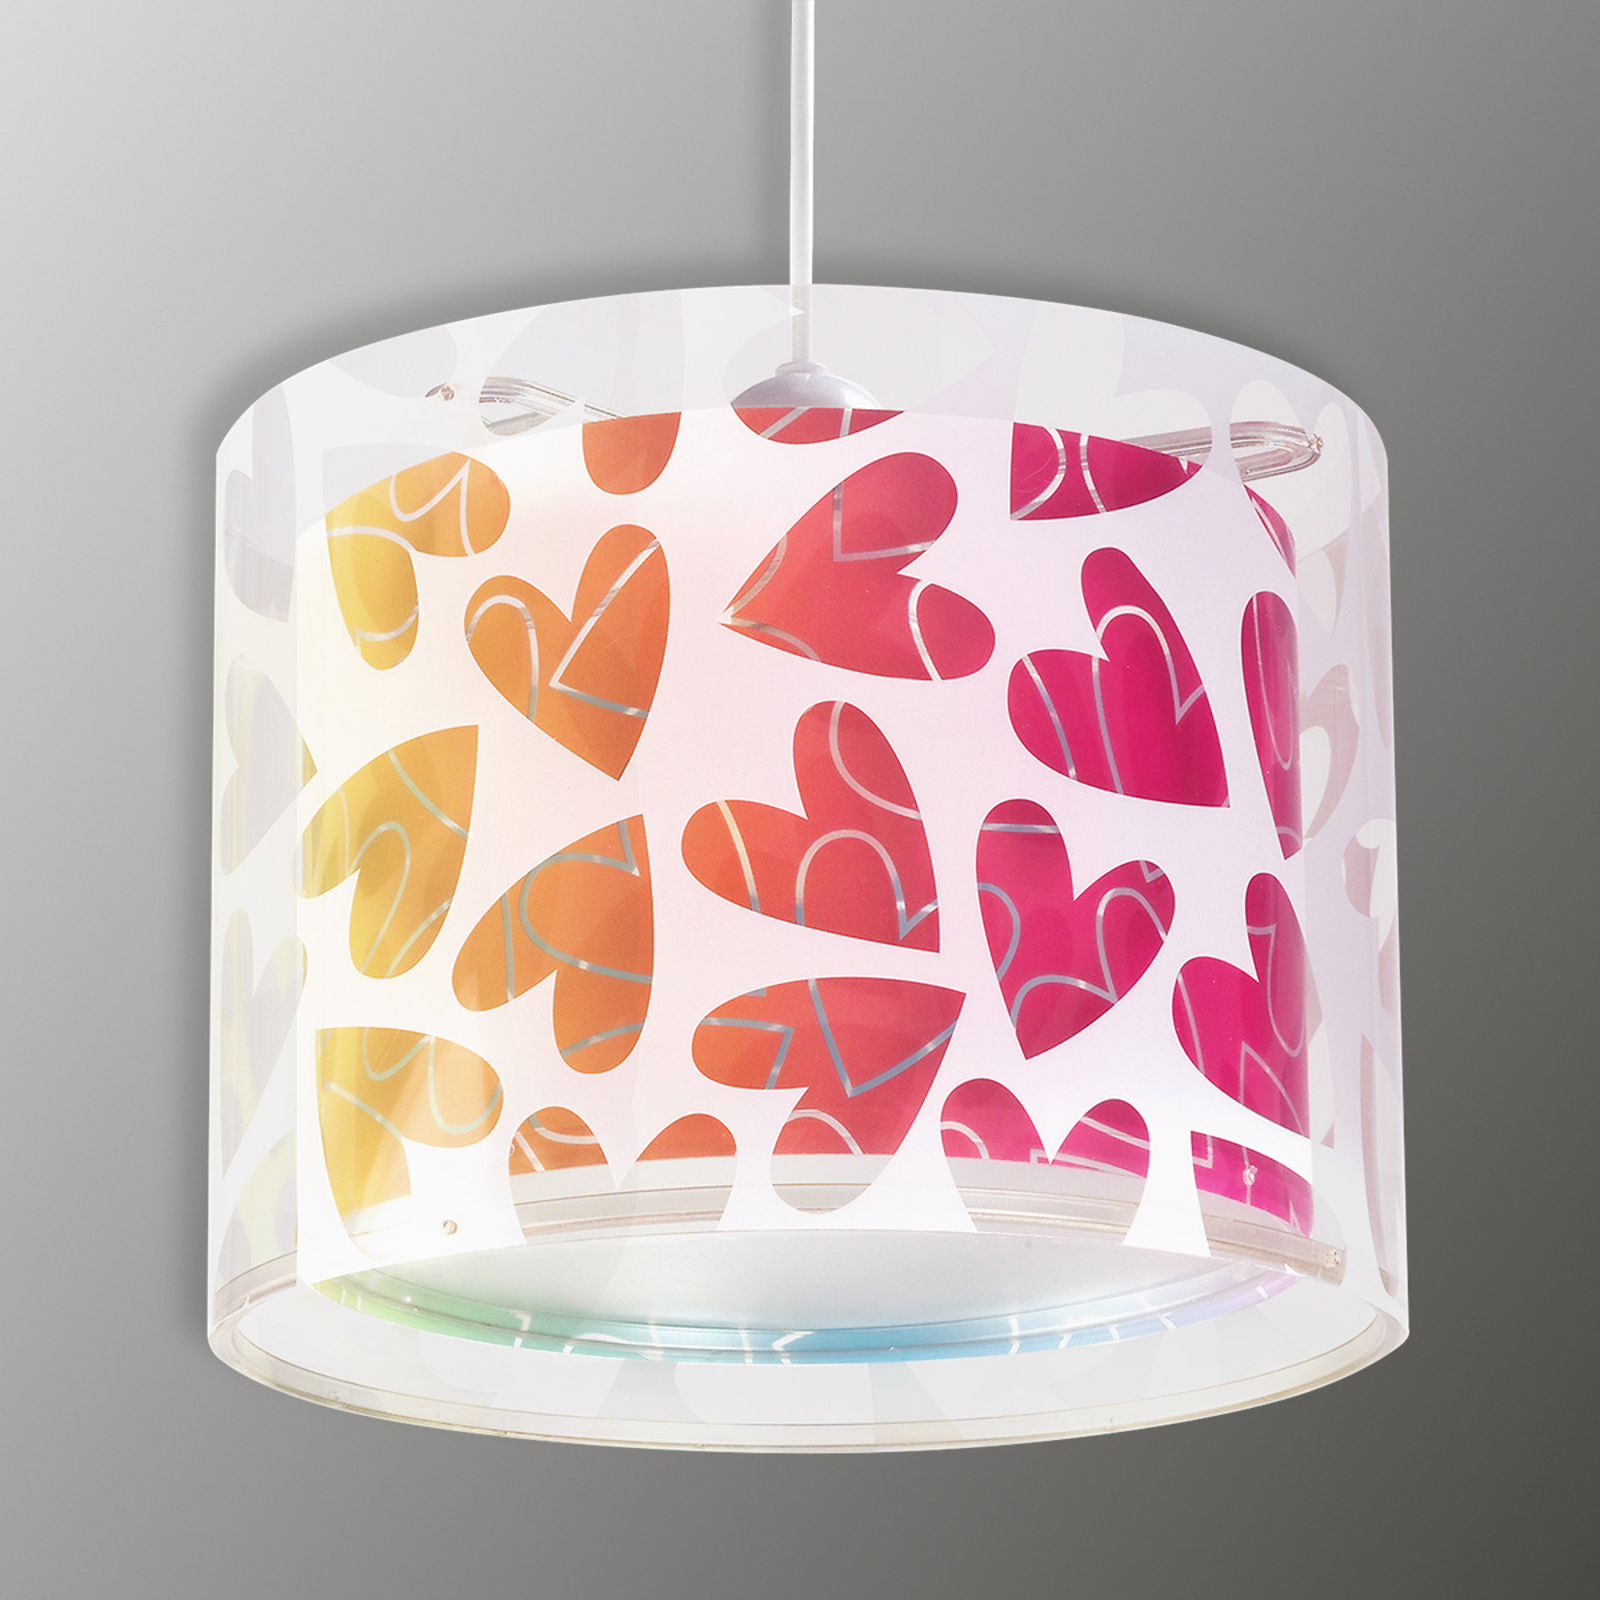 Children's hanging light Cuore with hearts_2507325_1